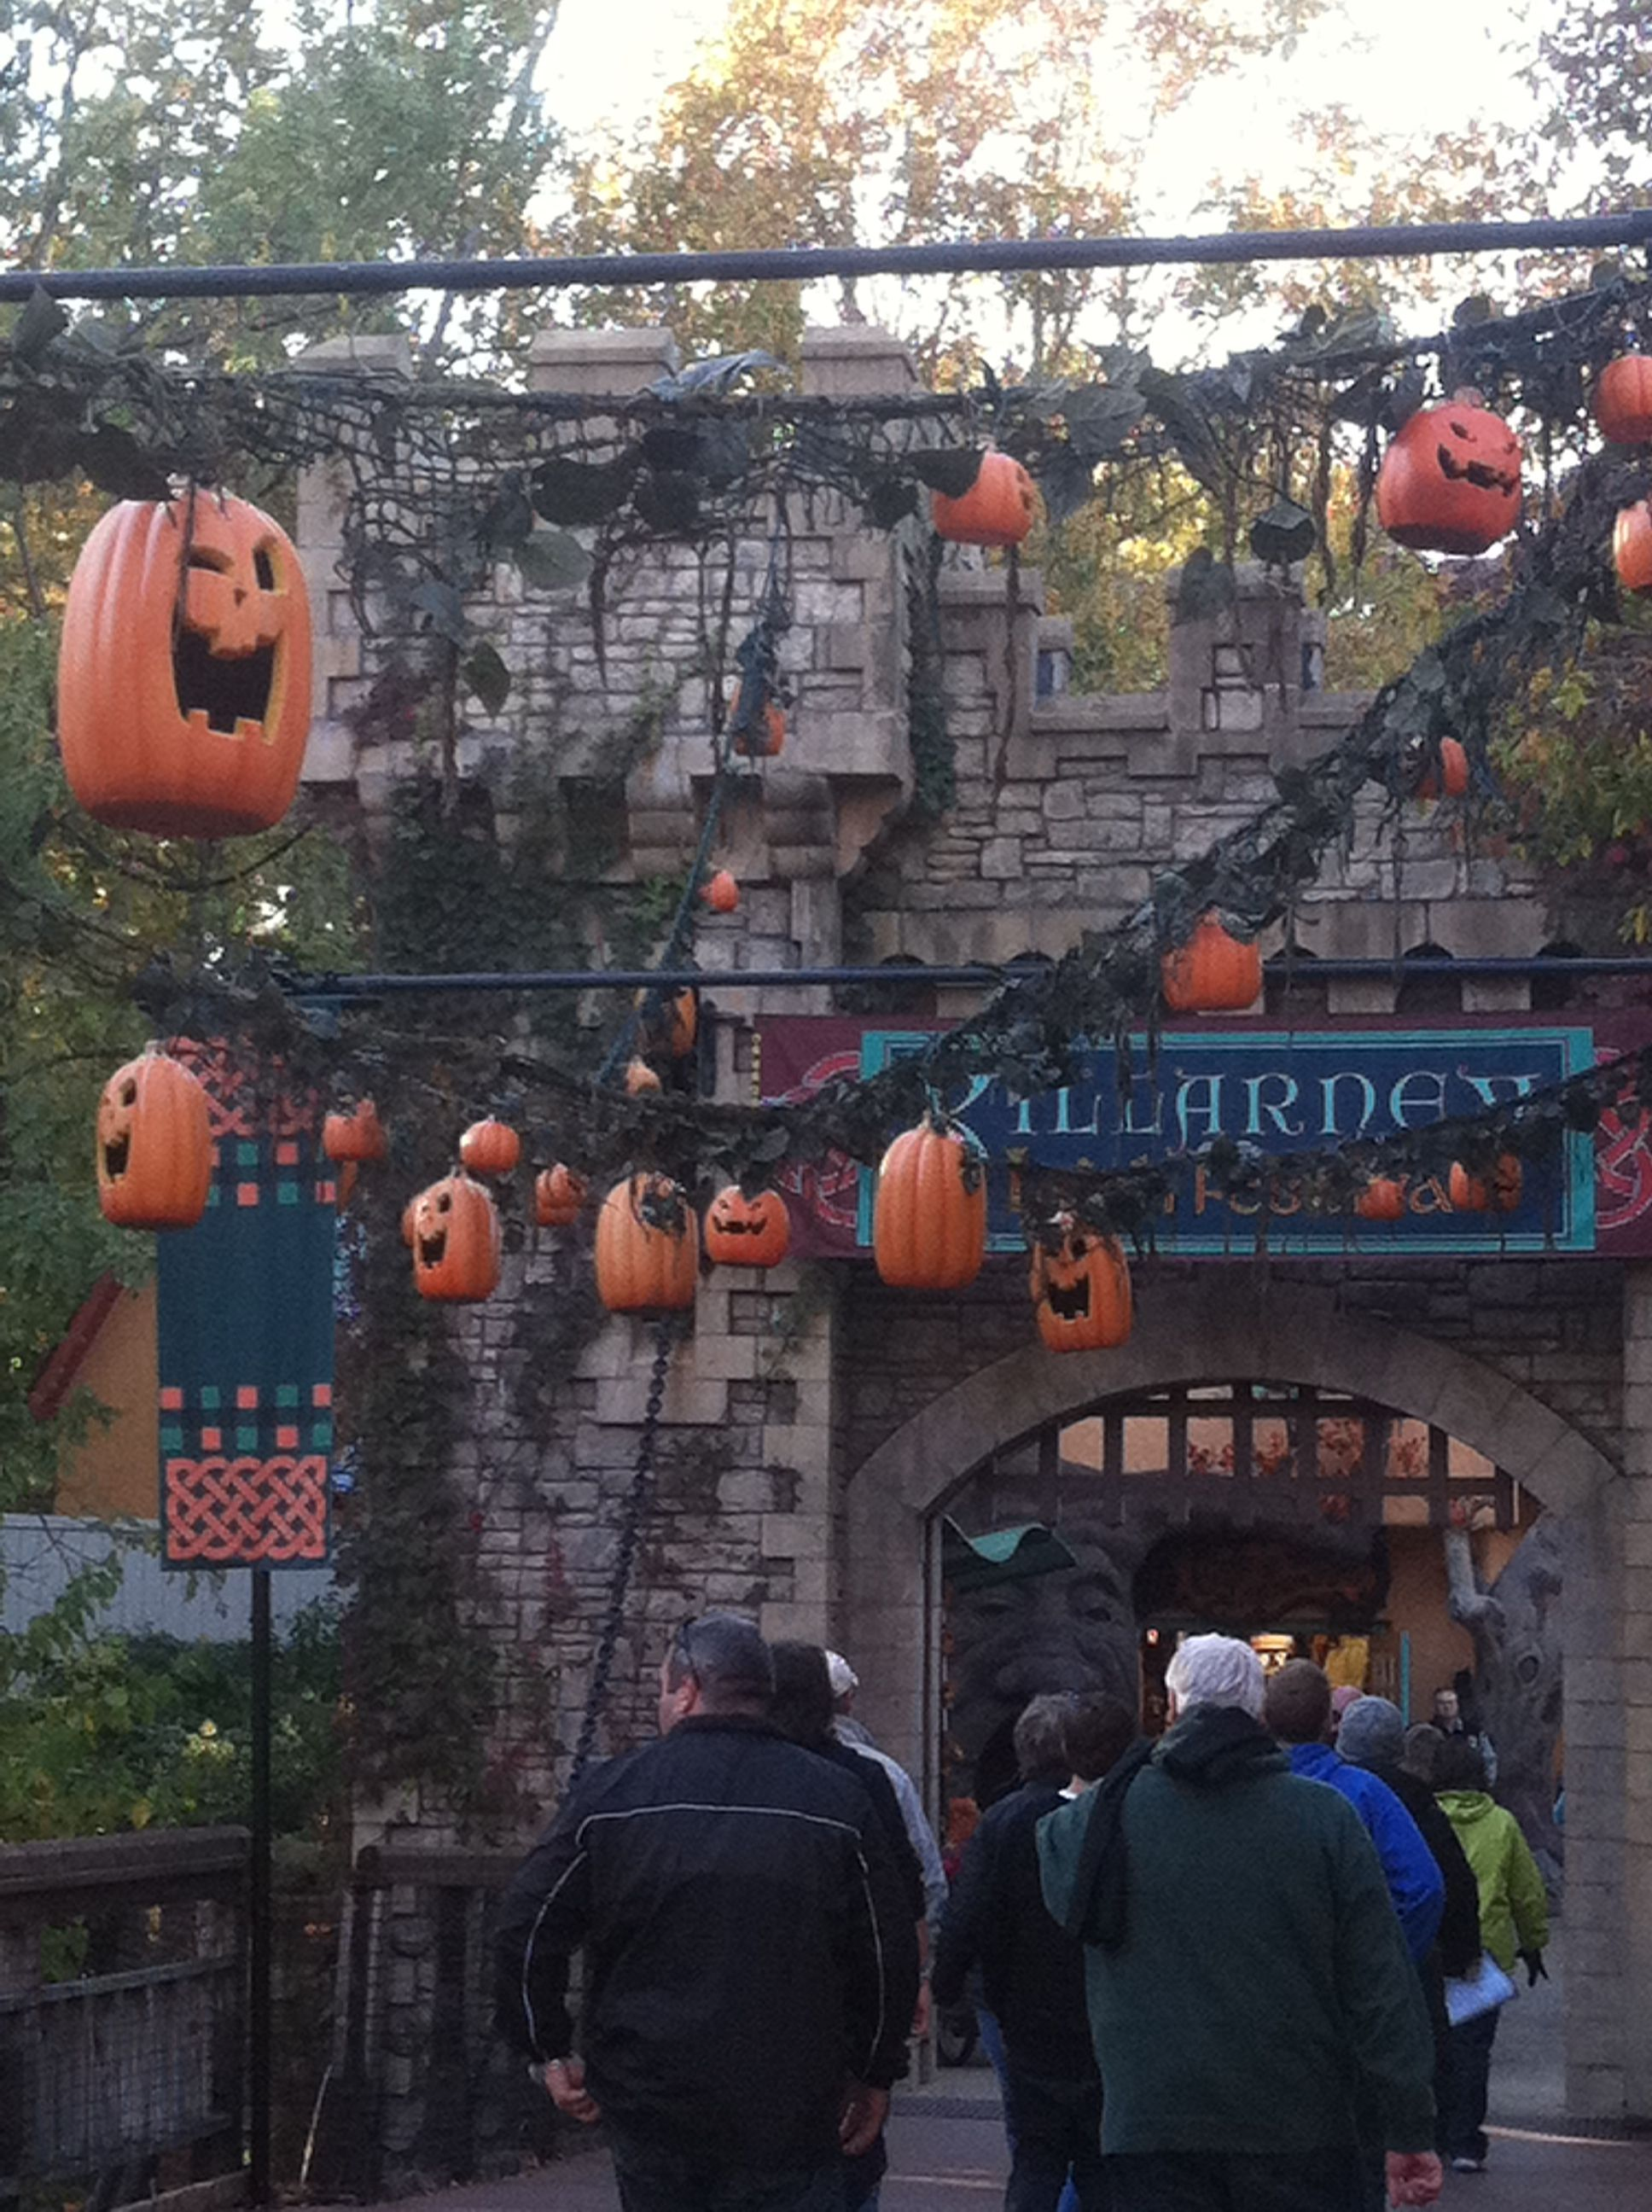 cf858db8ec09b5da07be348ebbf4e6dd - Busch Gardens Howl O Scream Williamsburg Discount